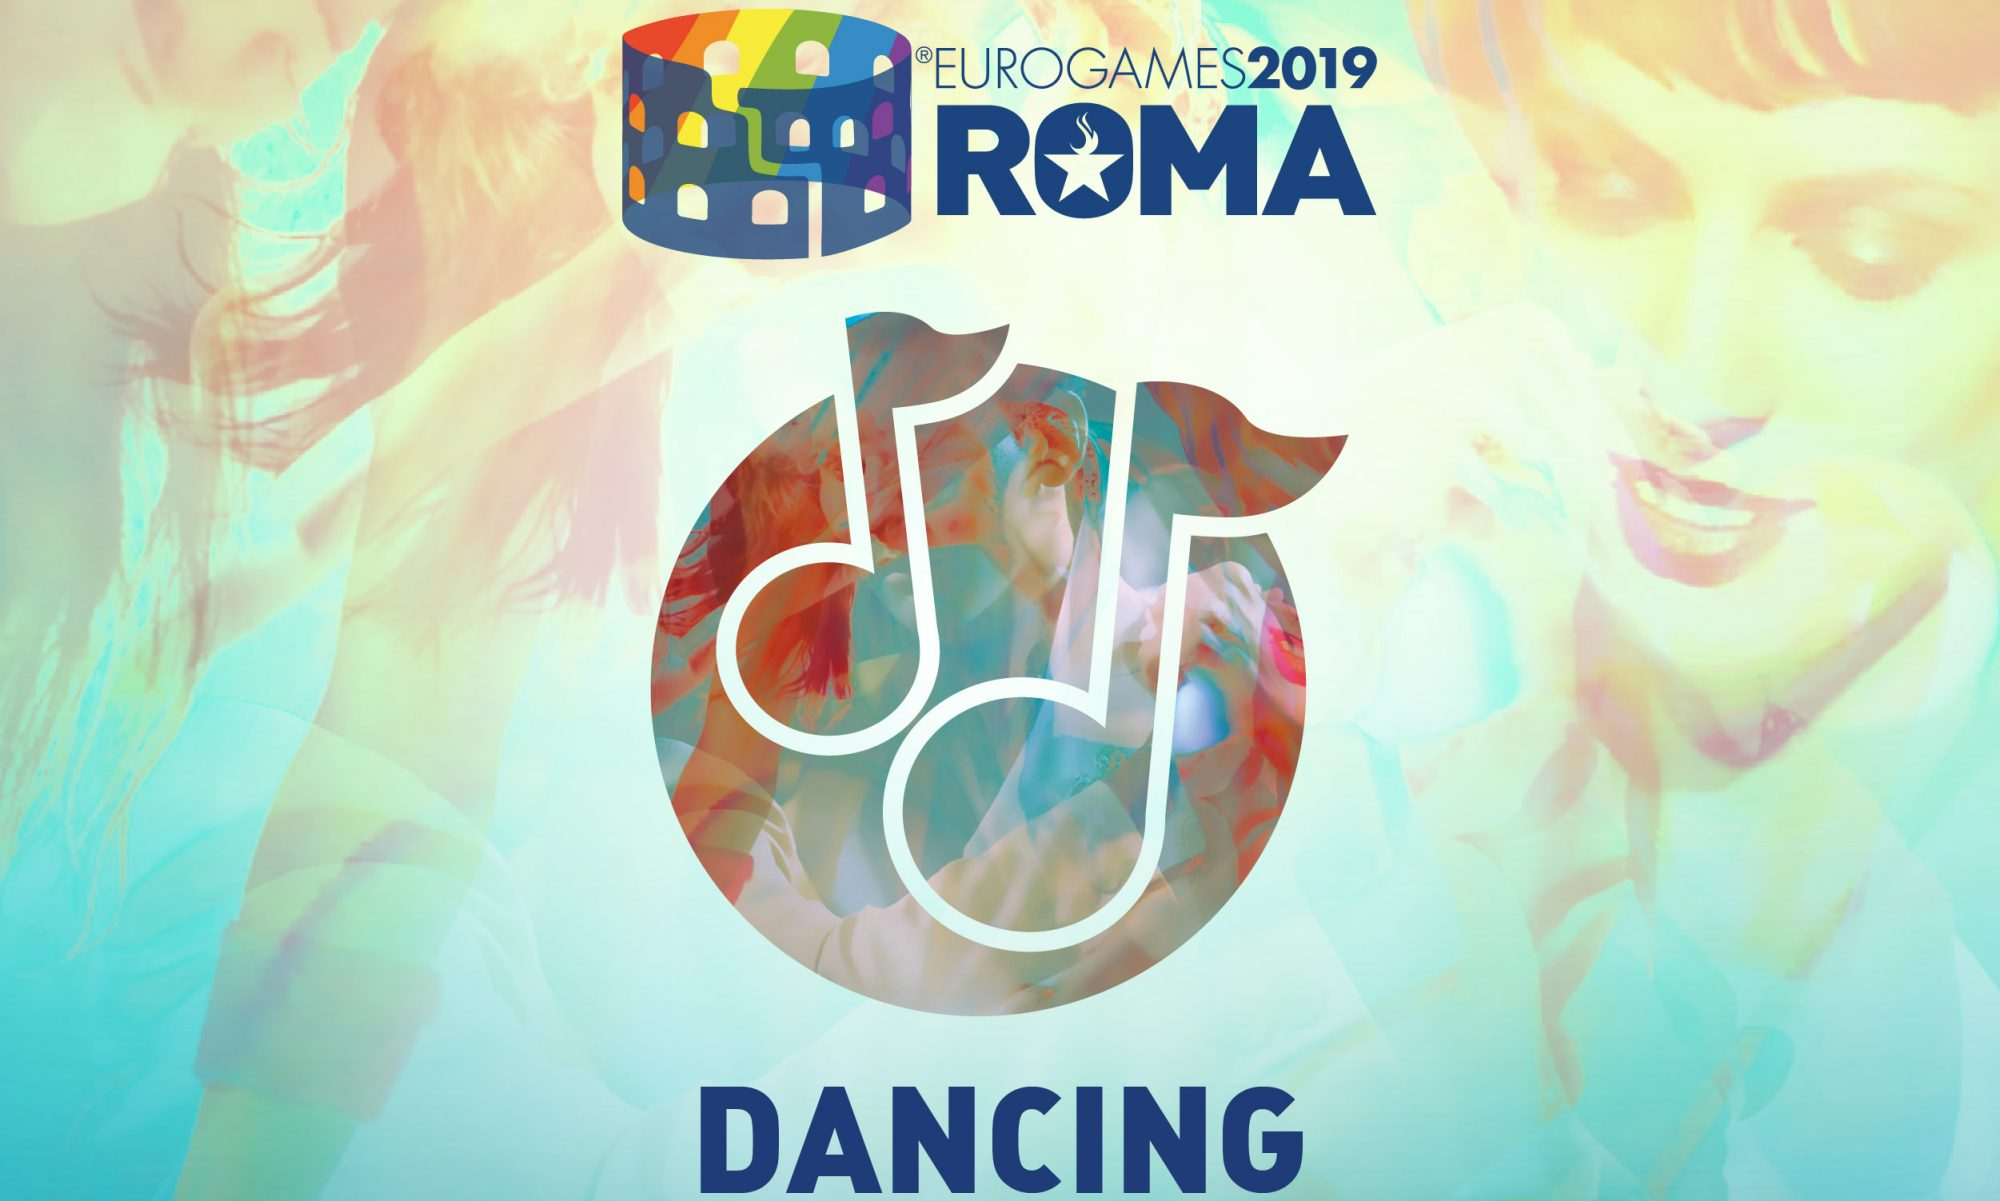 Dancing at EuroGames Rome 2019